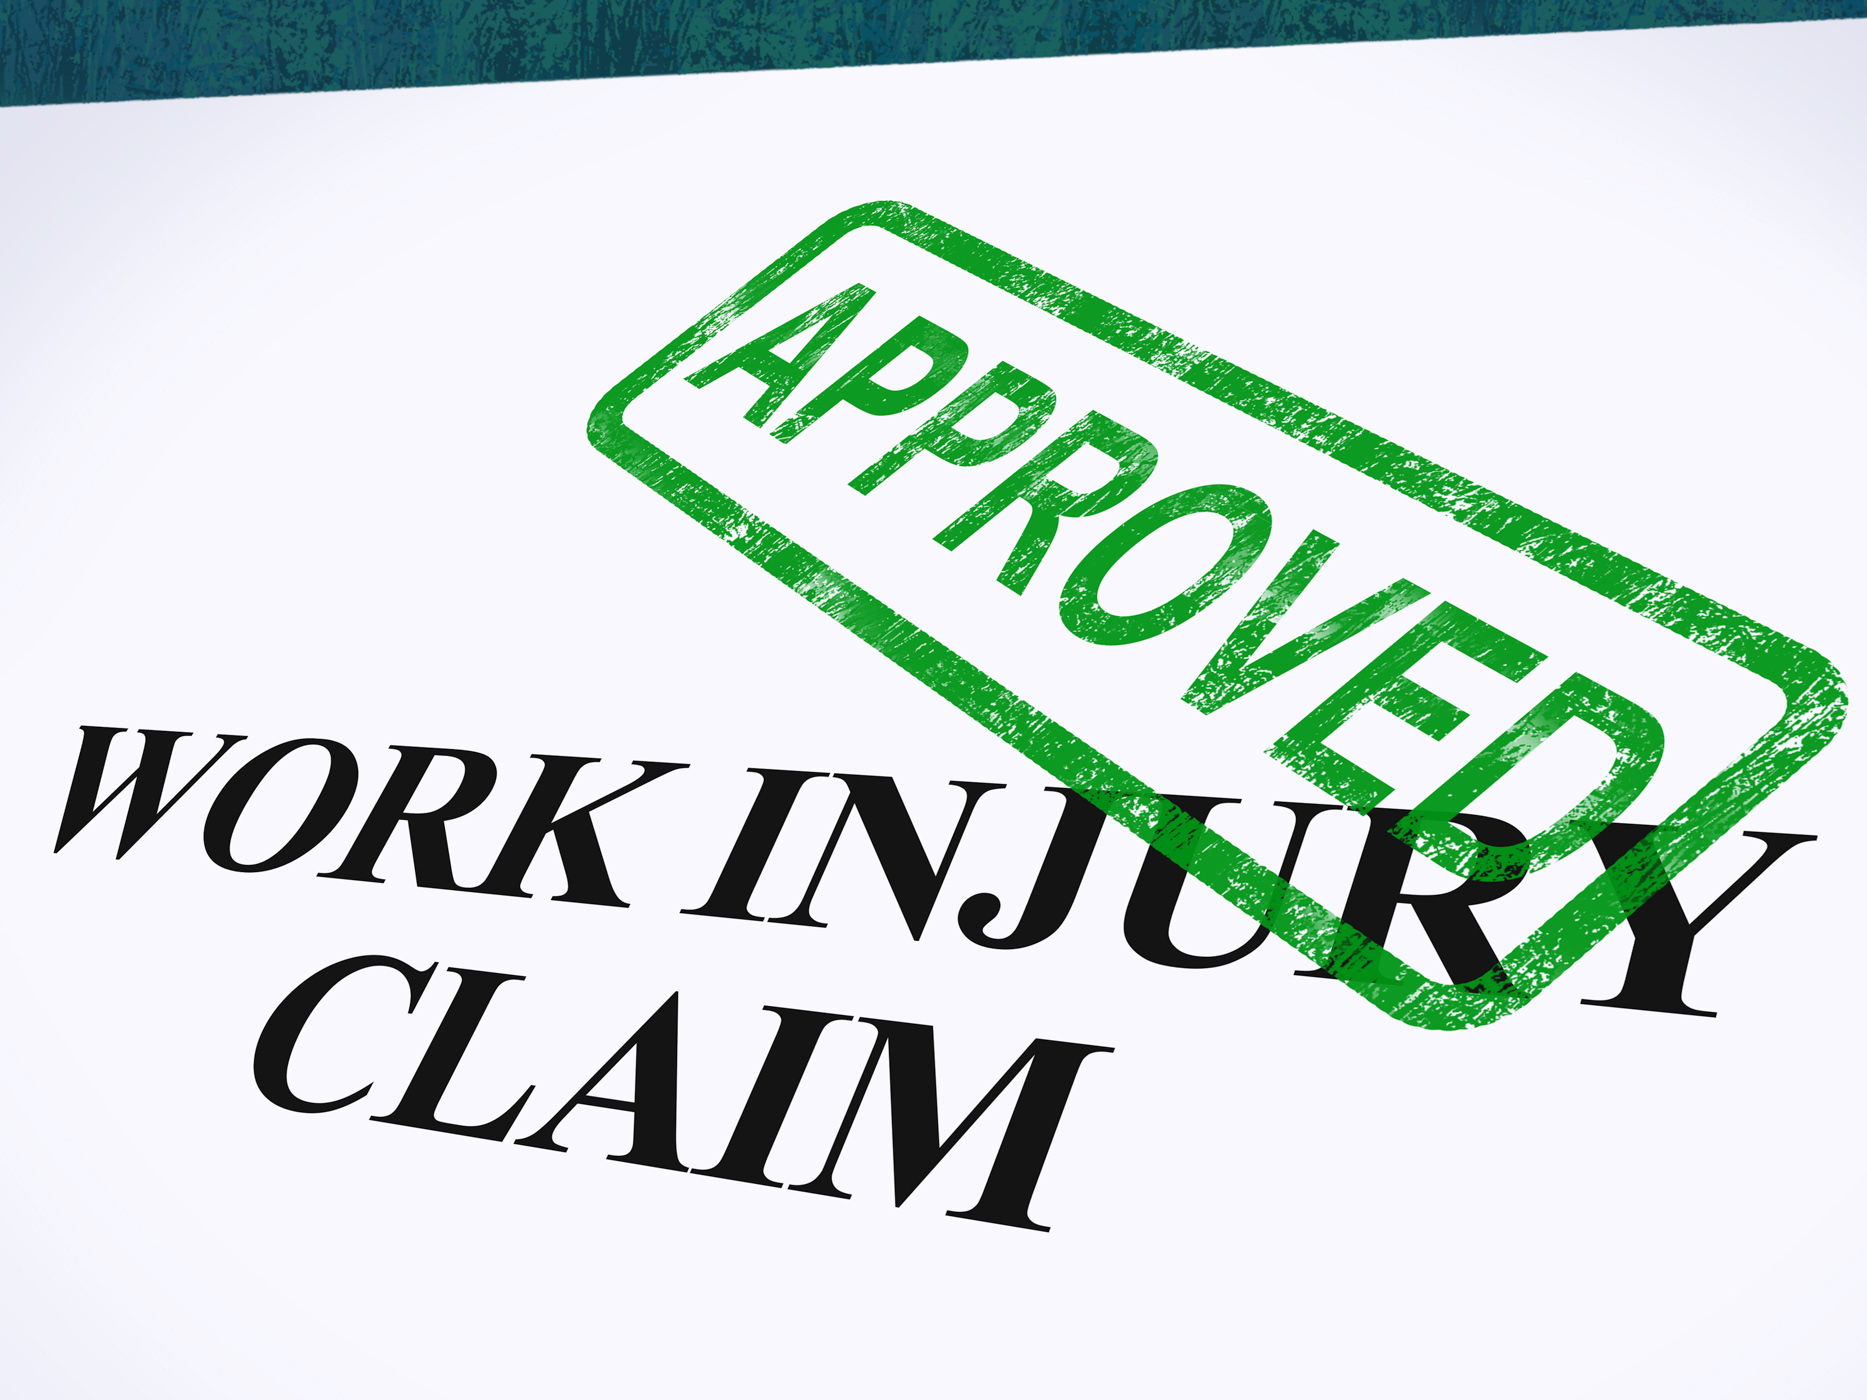 Work injury claim approved shows medical expenses repaid photo